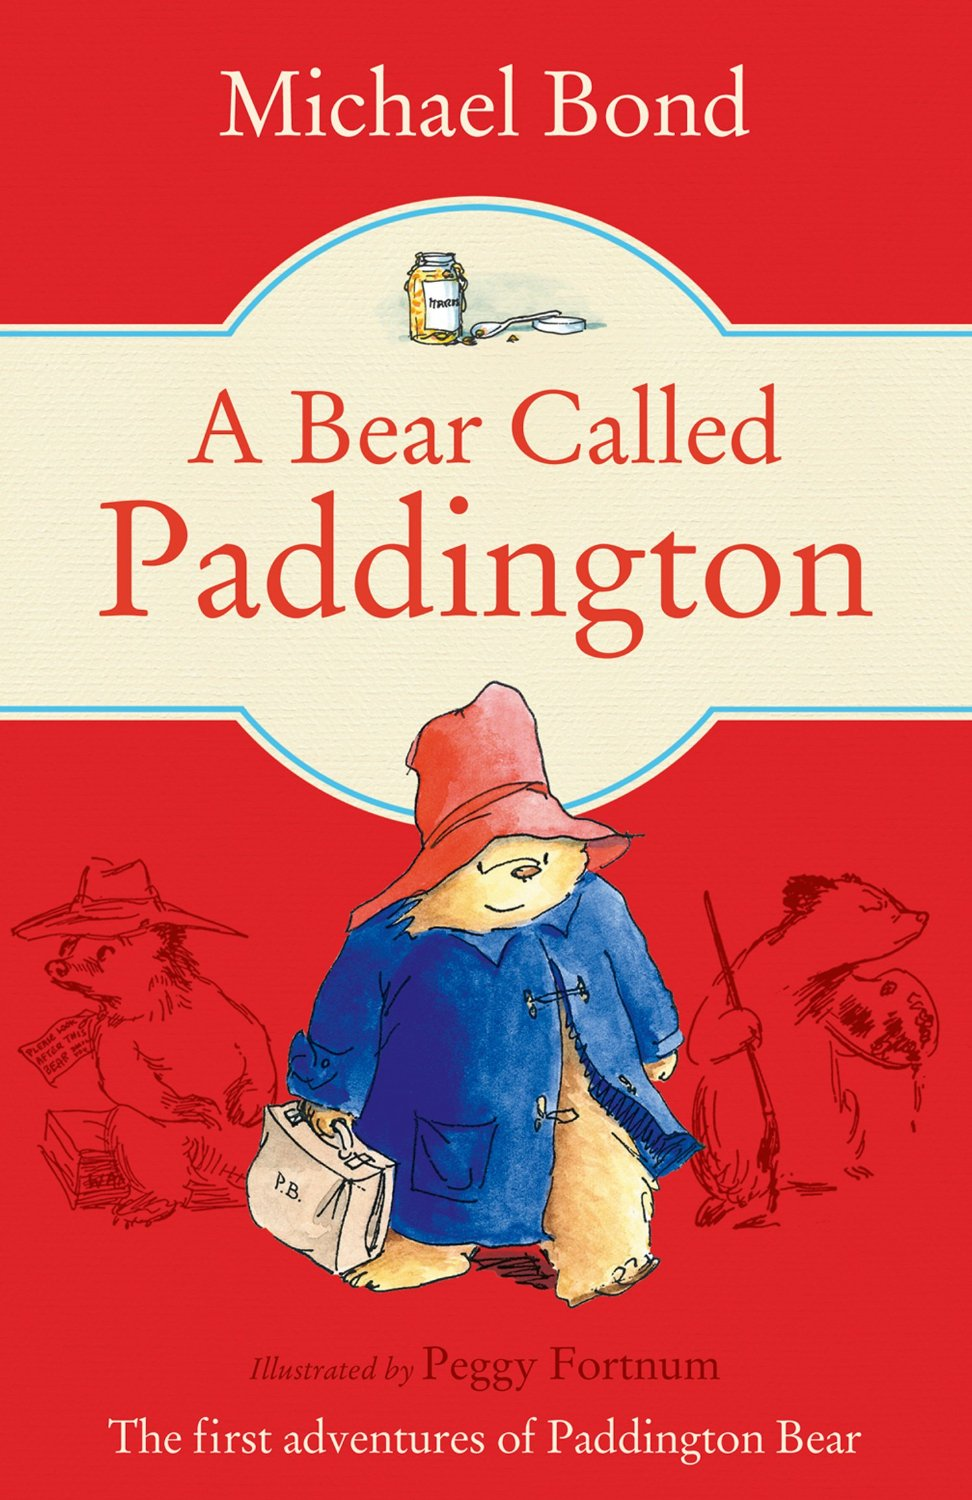 A Bear Called Paddington, by Michael Bond, illustrations by Peggy Fortnum.                                                                                                                            This iconic bear with the blue jacket charms readers with his clumsiness and ridiculous antics.                                                                                                                            Buy now: A Bear Called Paddington